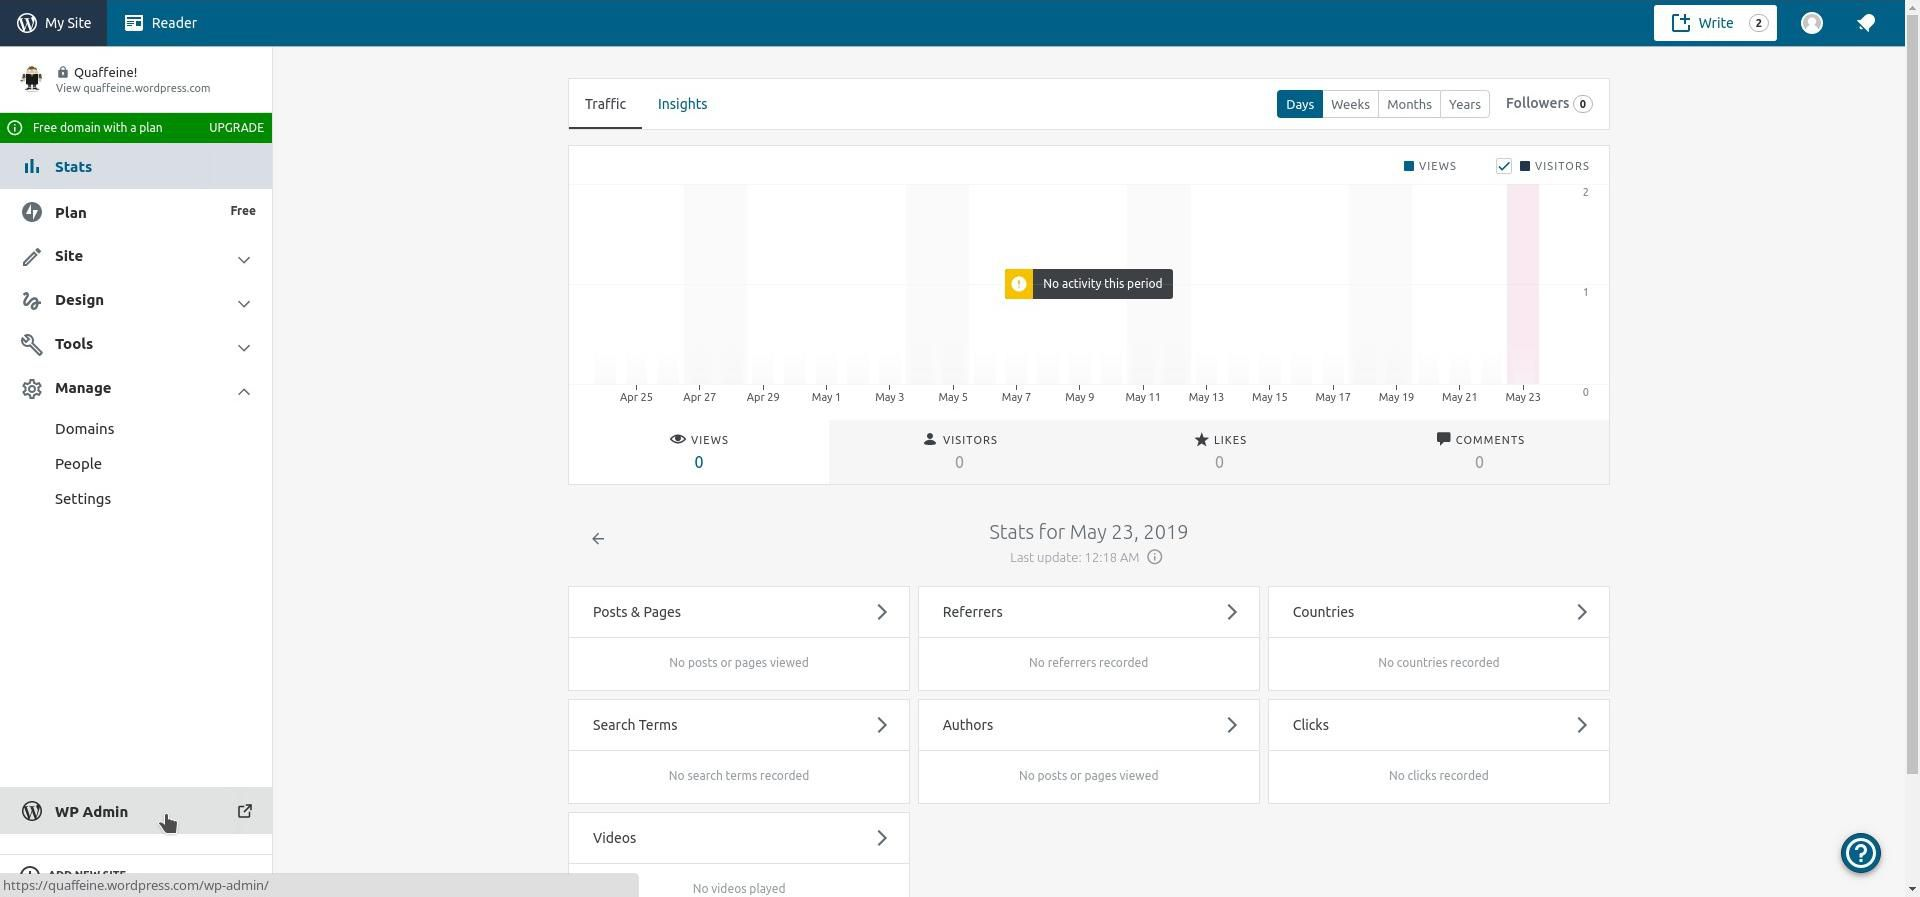 Your WordPress.com Dashboard for Your Site Contains a Link to the Admin Panel